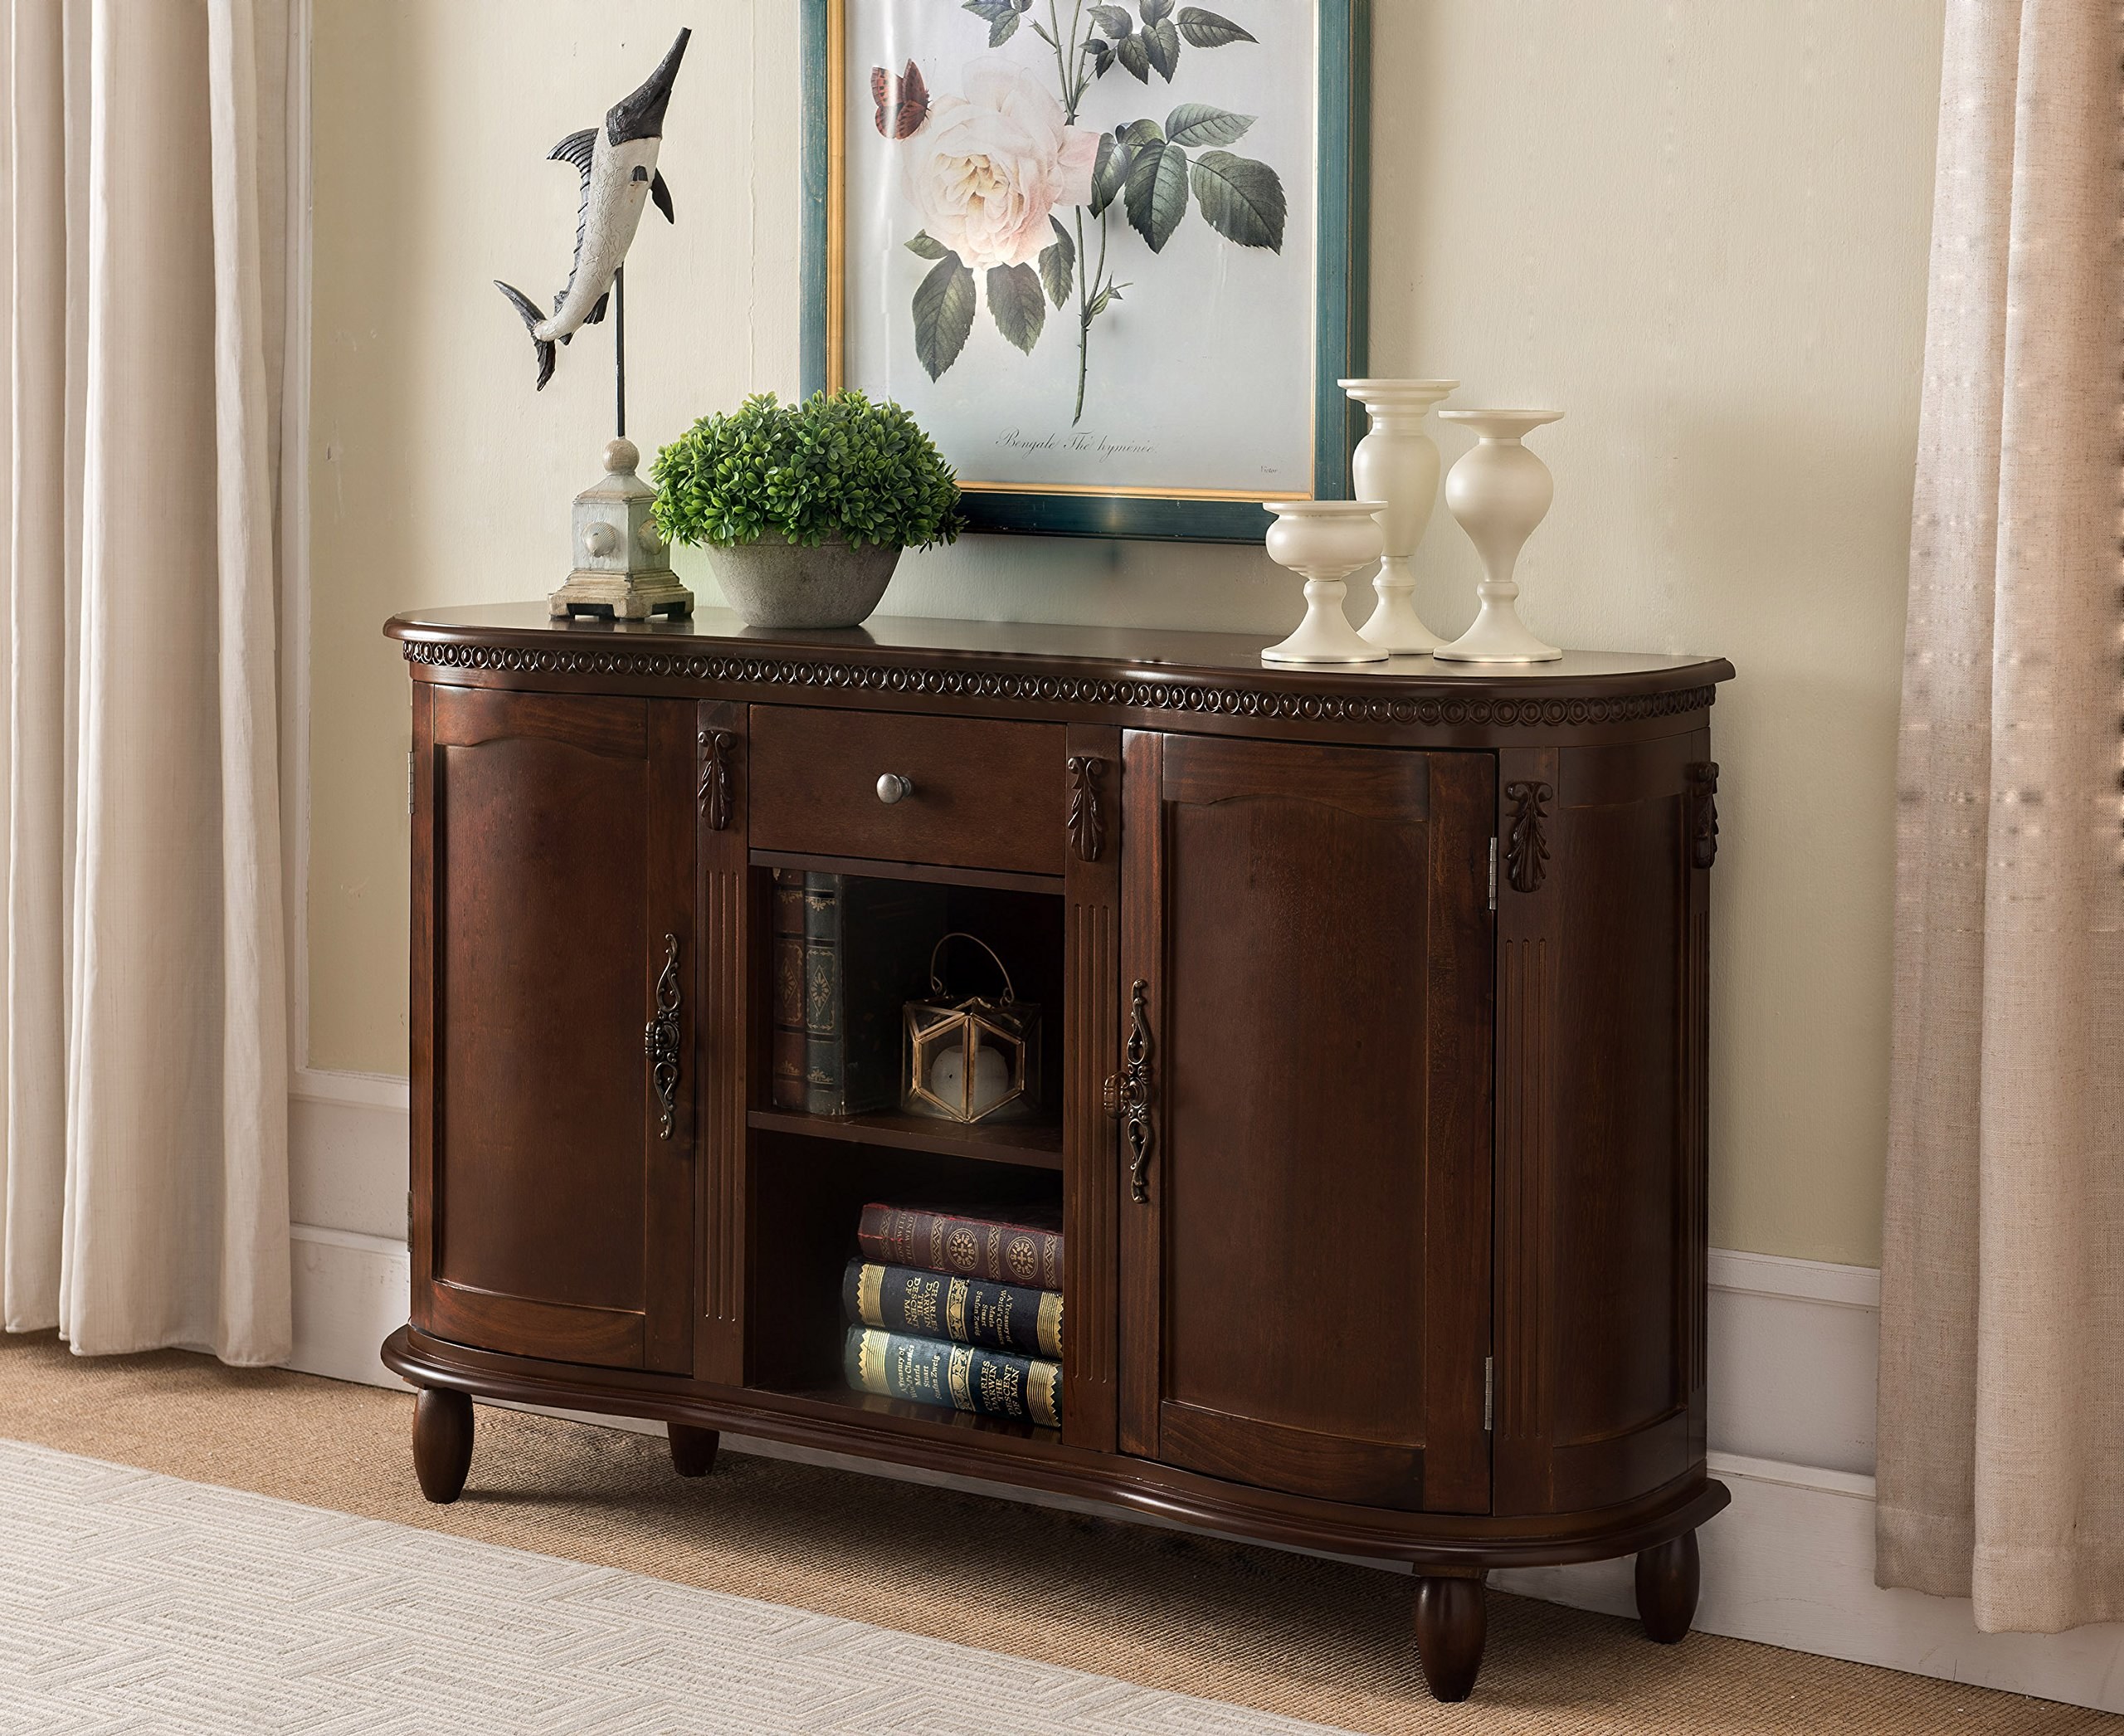 Kings Brand Furniture - Wood Buffet Server/Sideboard Console Table Cabinet, Walnut by Kings Brand Furniture (Image #1)